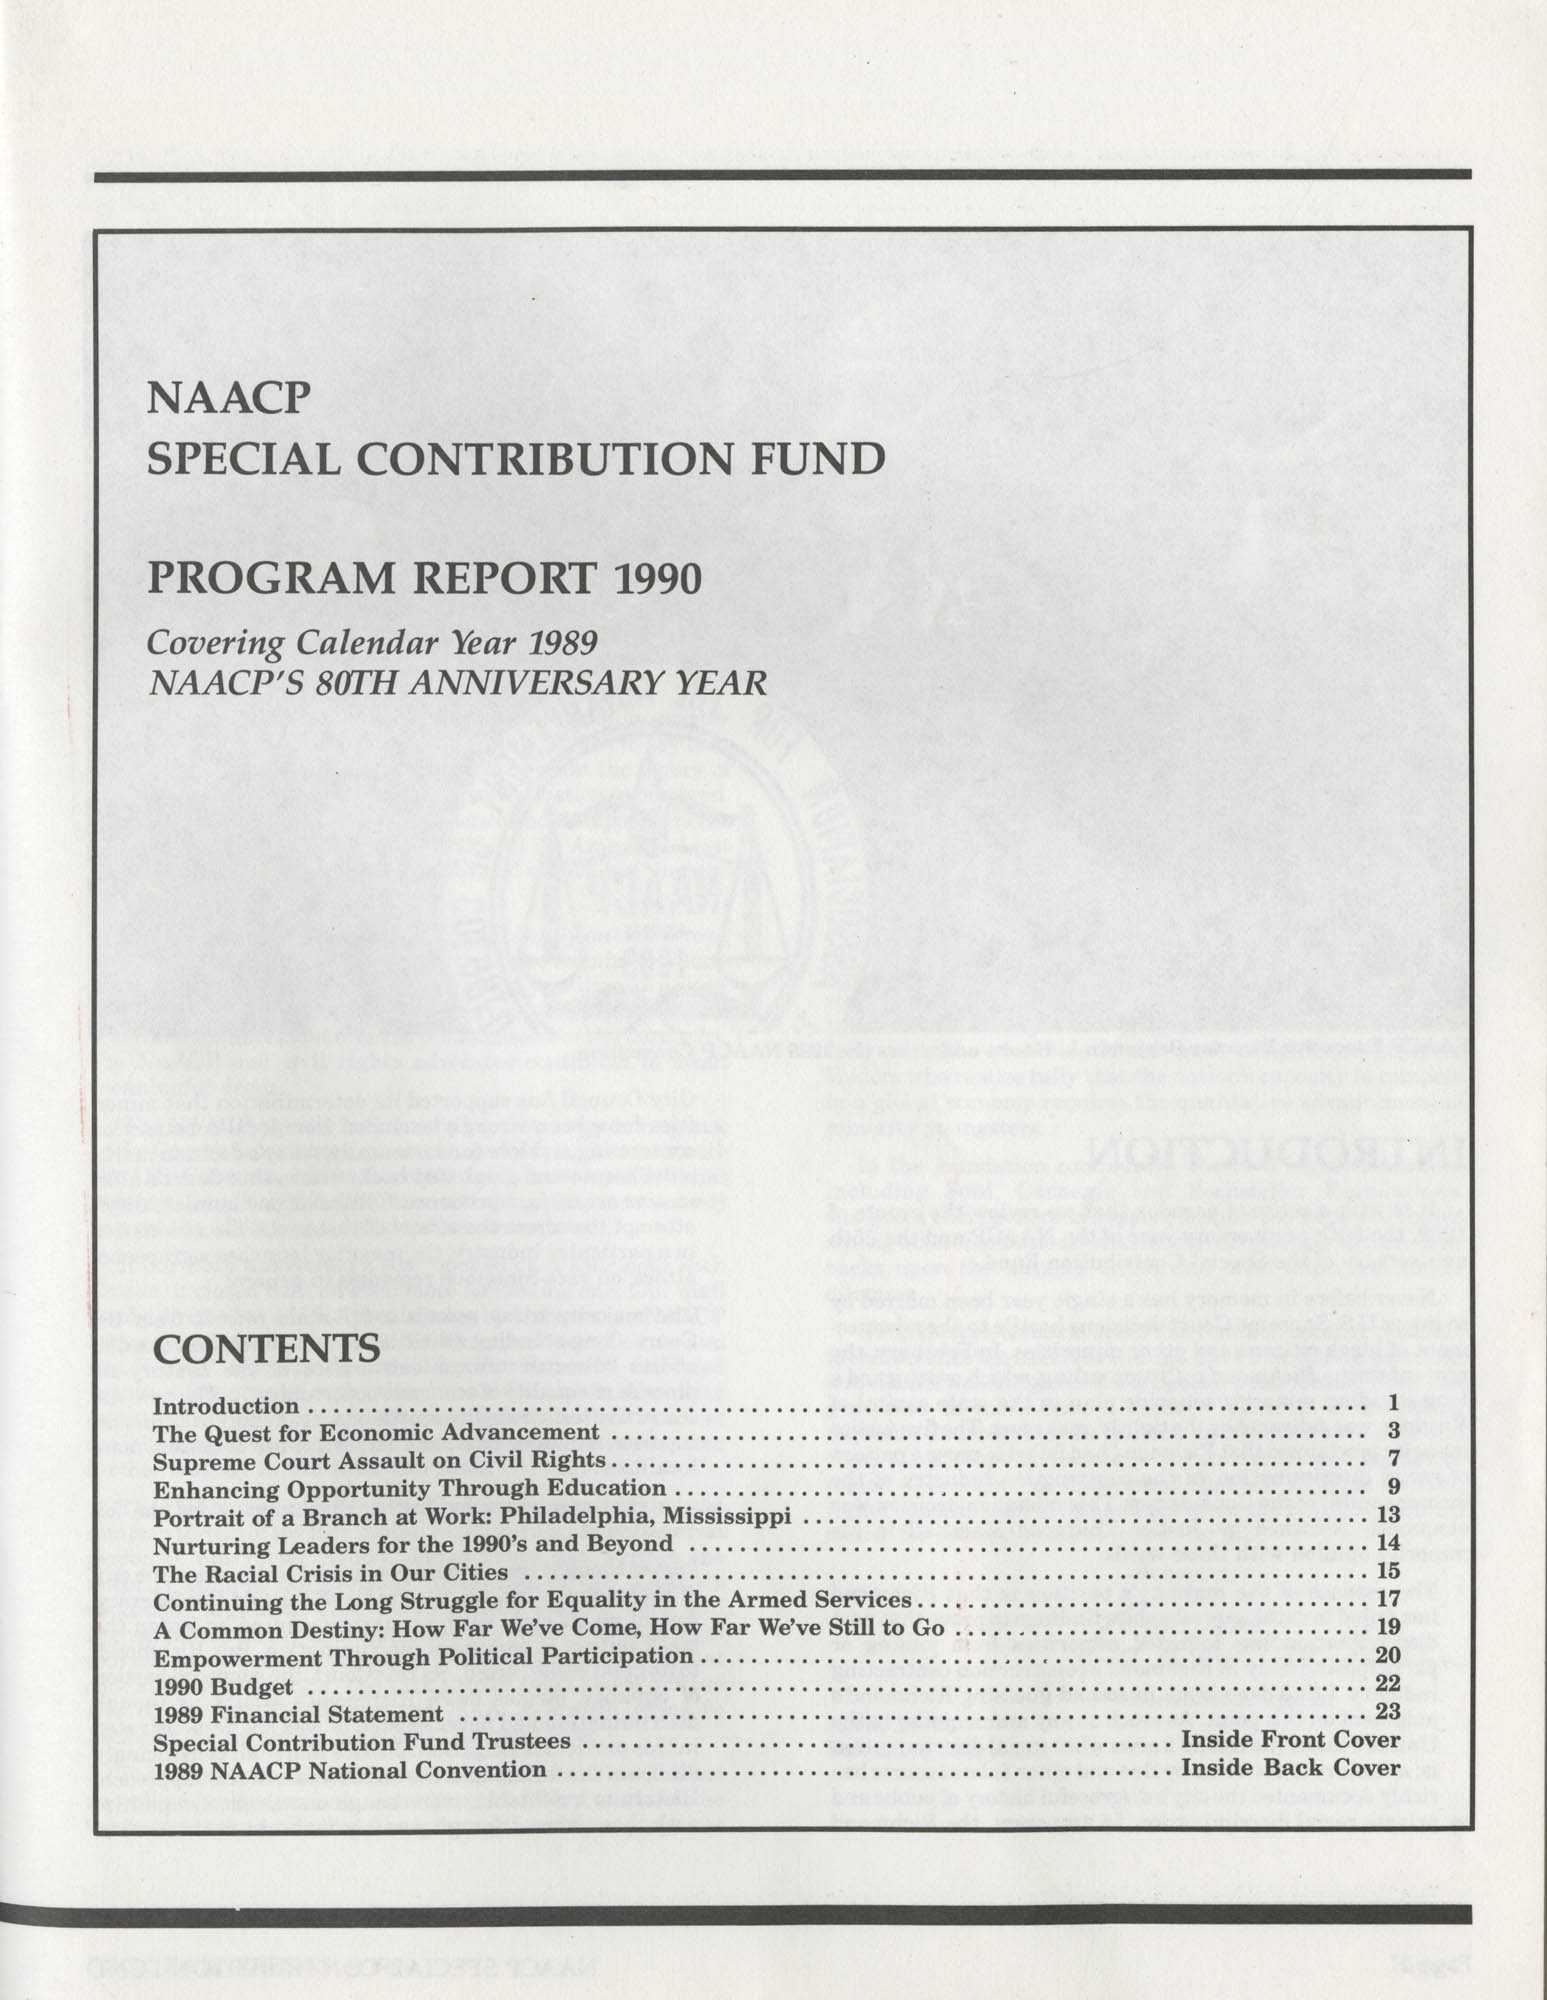 Program Report 1990, Special Contribution Fund, NAACP, Introduction Page 2